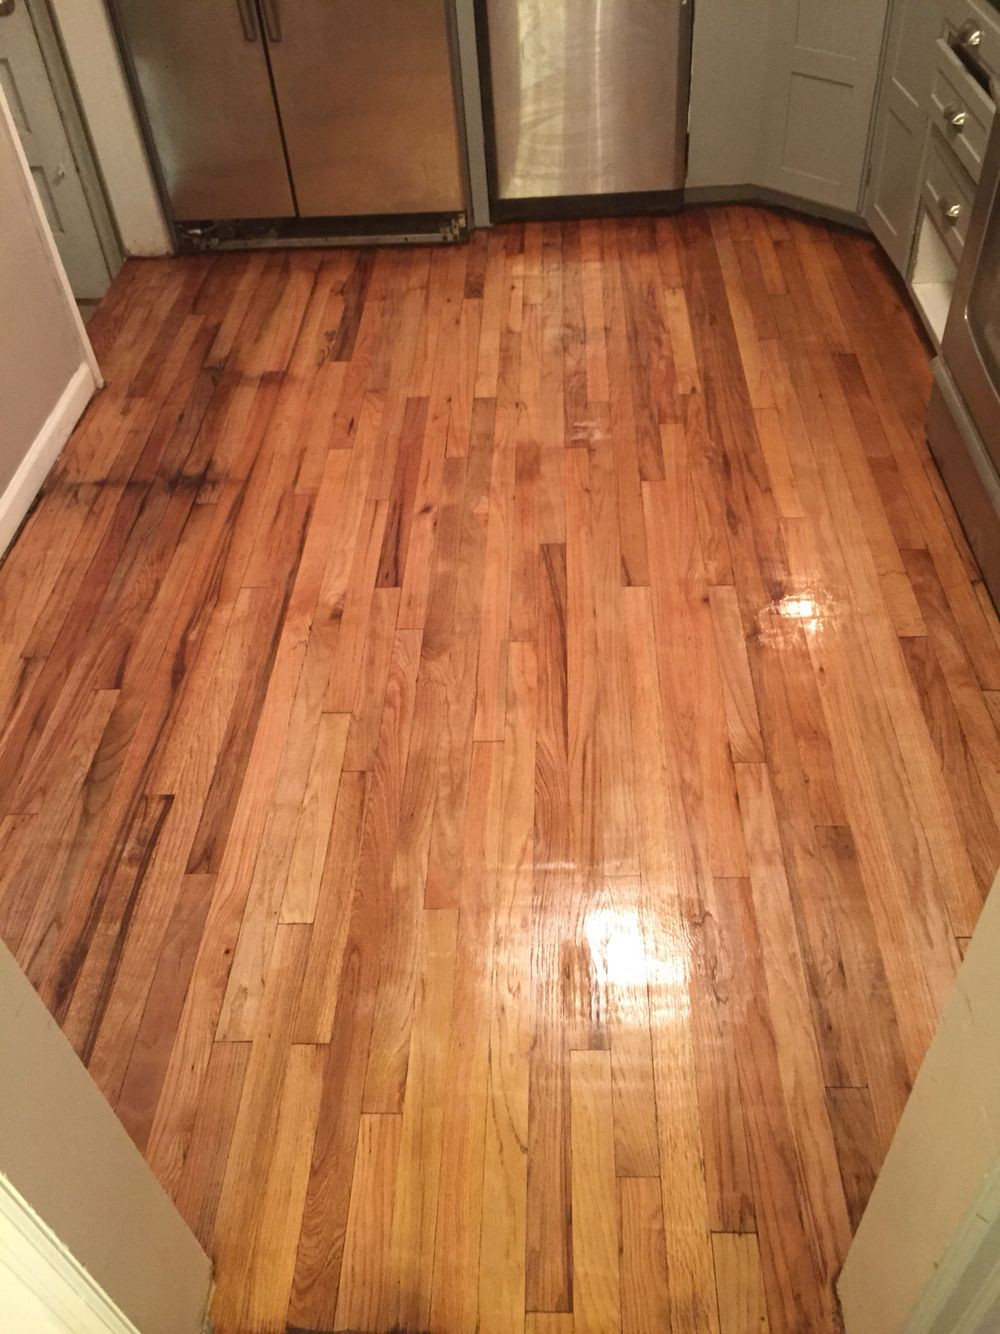 how to refinish hardwood floors with drum sander of diy hardwood floor refinishing refinished red oak hard wood floors regarding diy hardwood floor refinishing refinished red oak hard wood floors found under vinyl flooring in